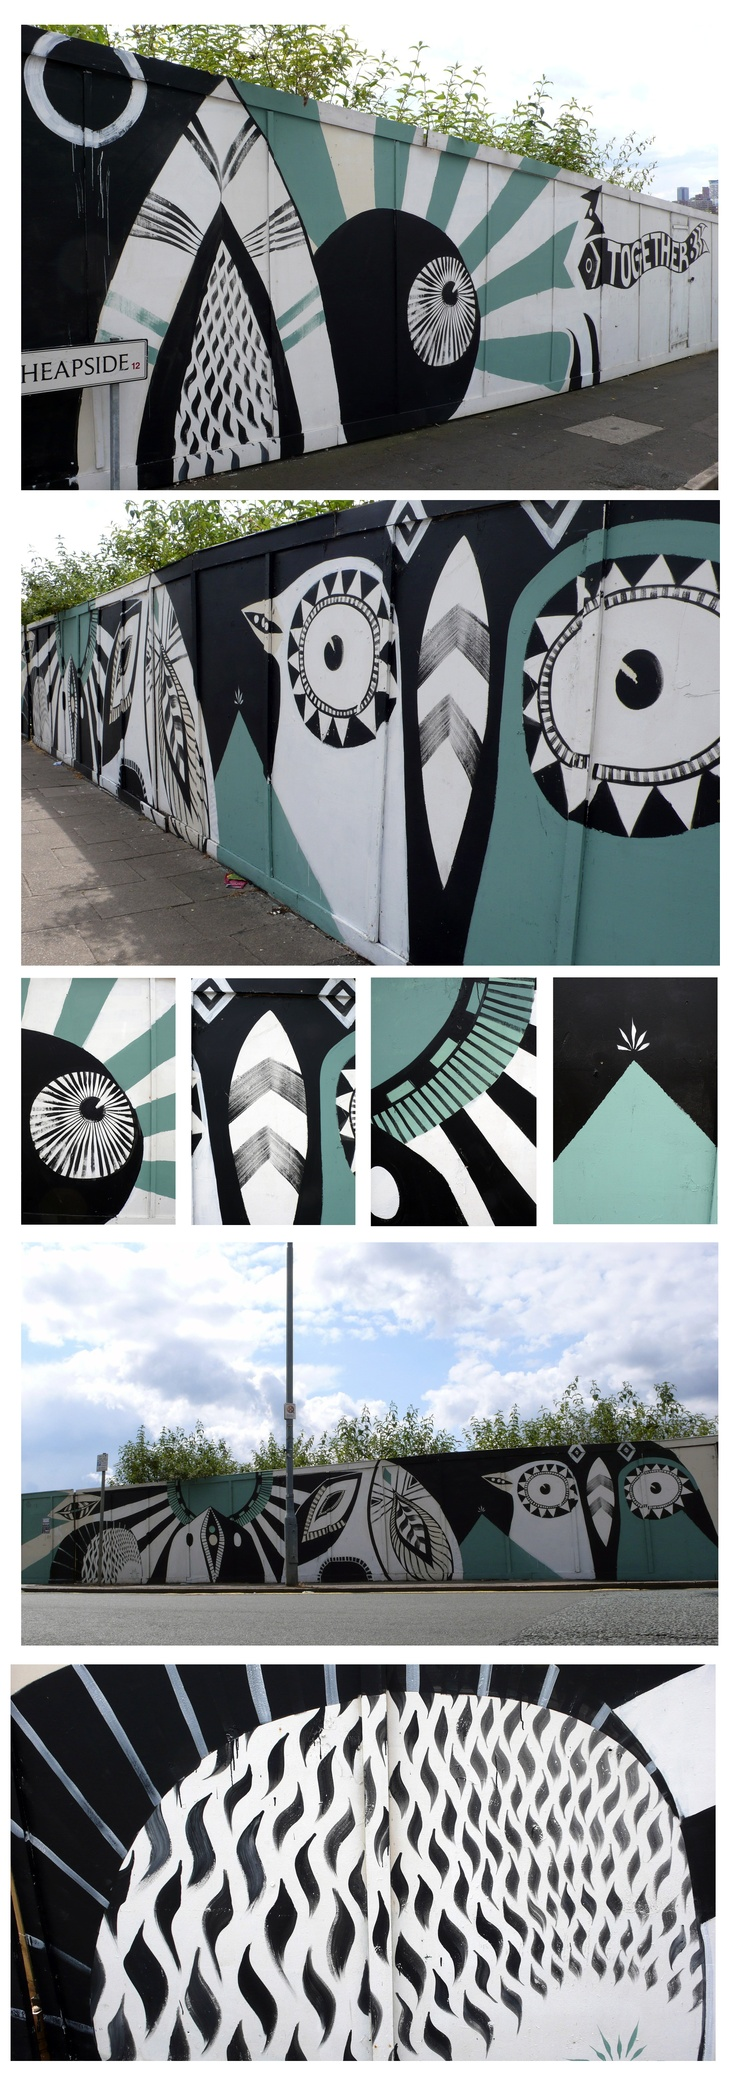 Abandoned Hoardings Revisited: LUCY McLauchlan